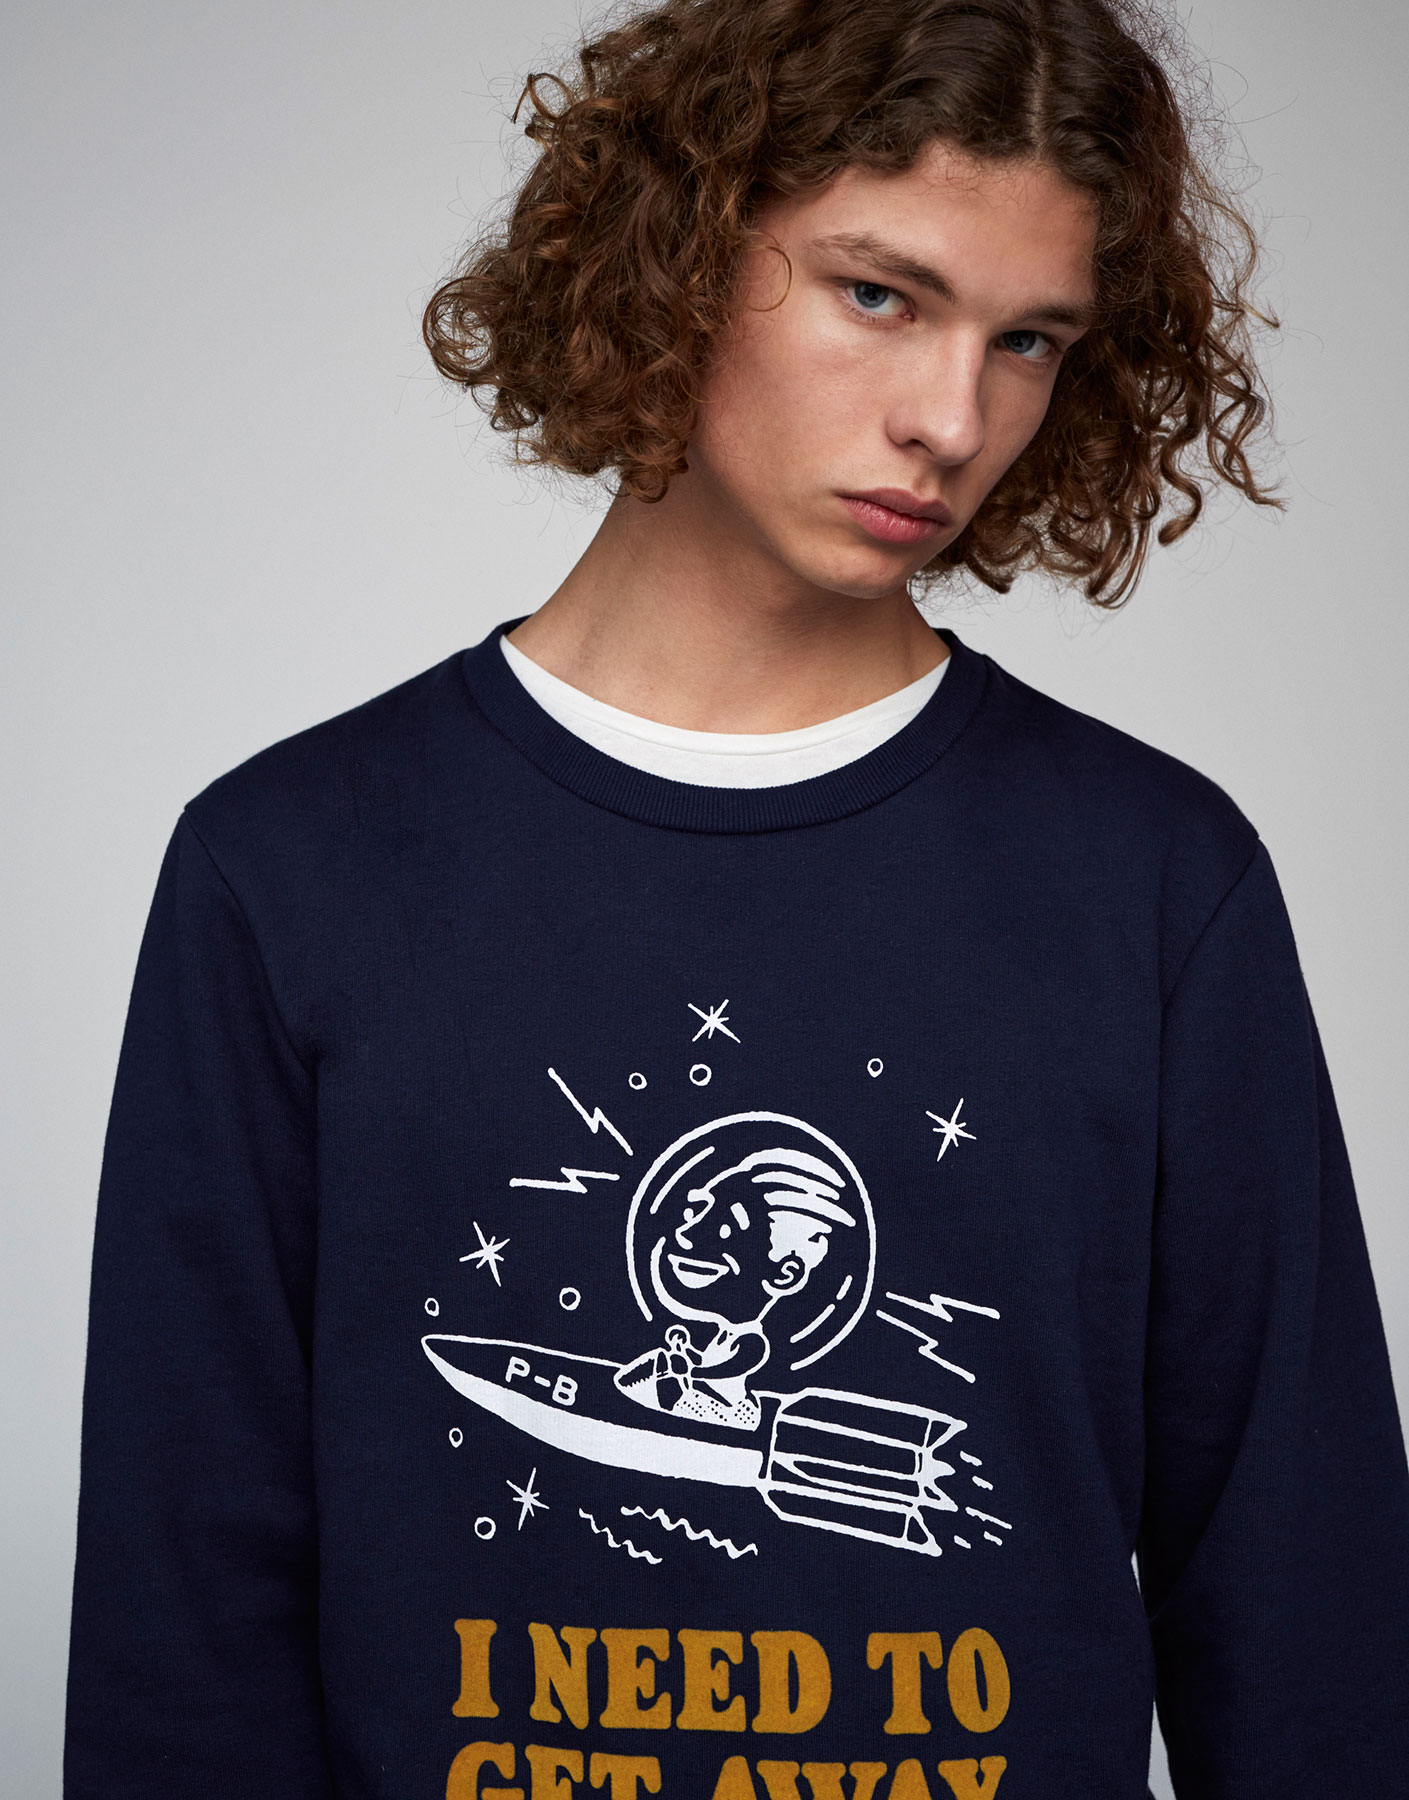 Teen sweatshirt with illustration and text